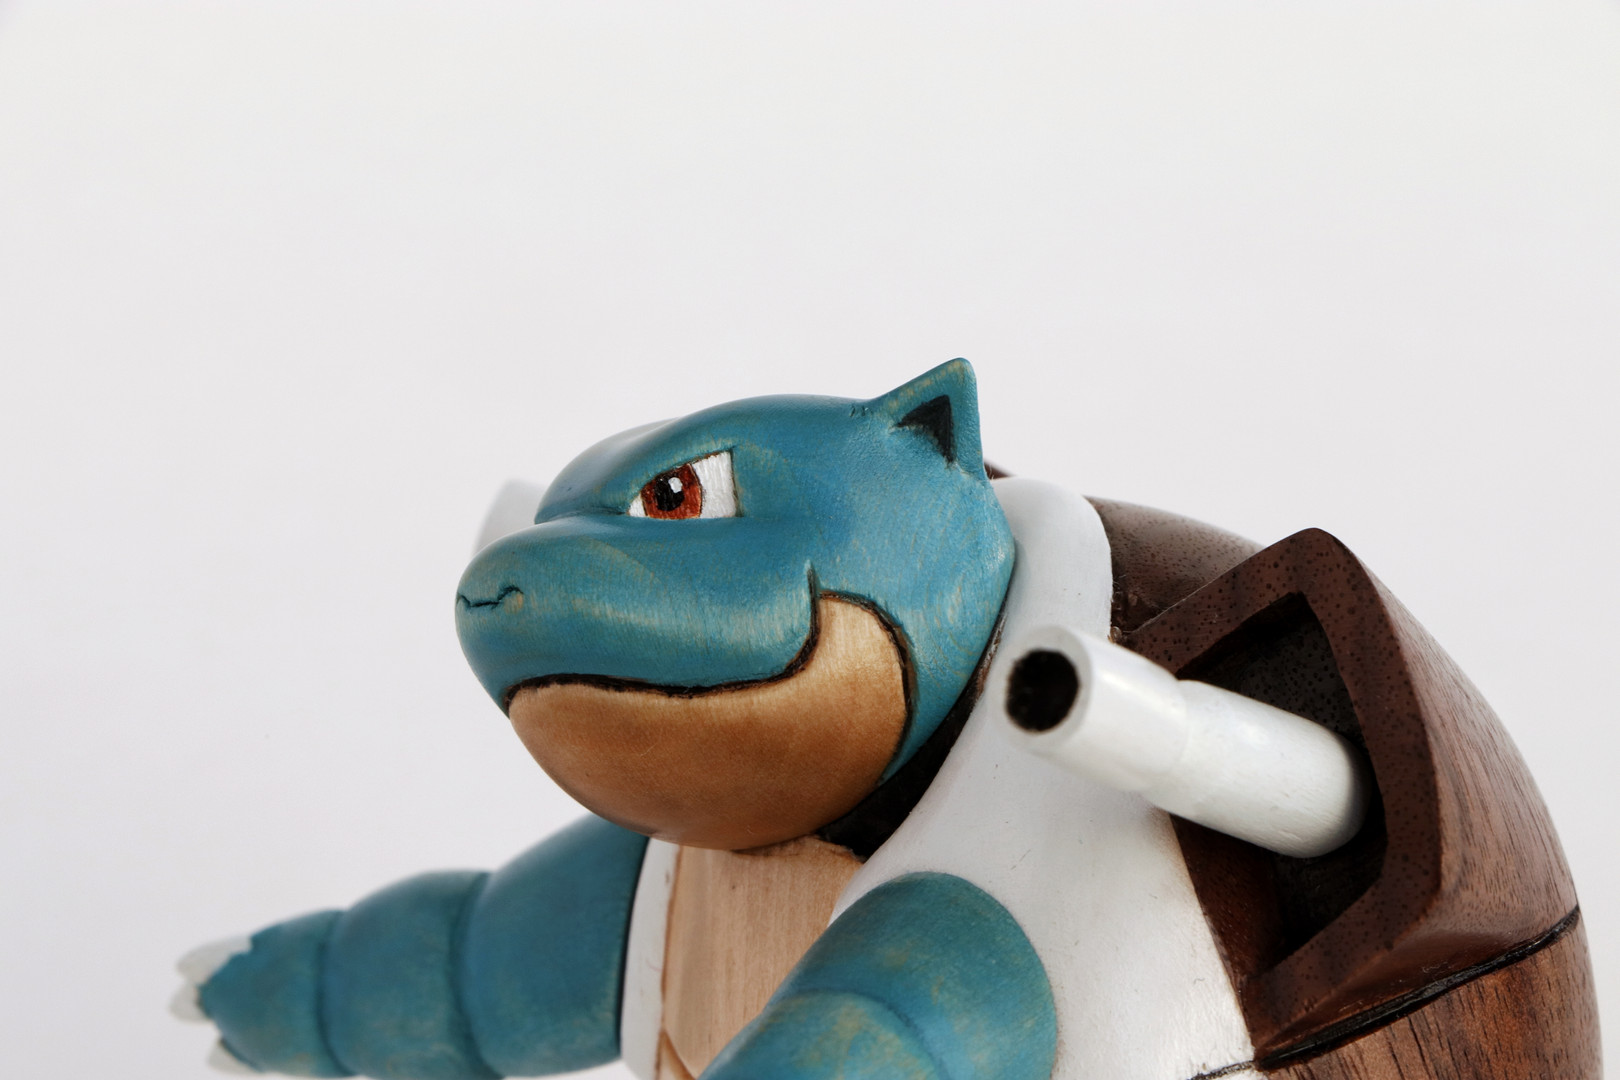 Blastoise wood carving wooden pokemon hand carved figure